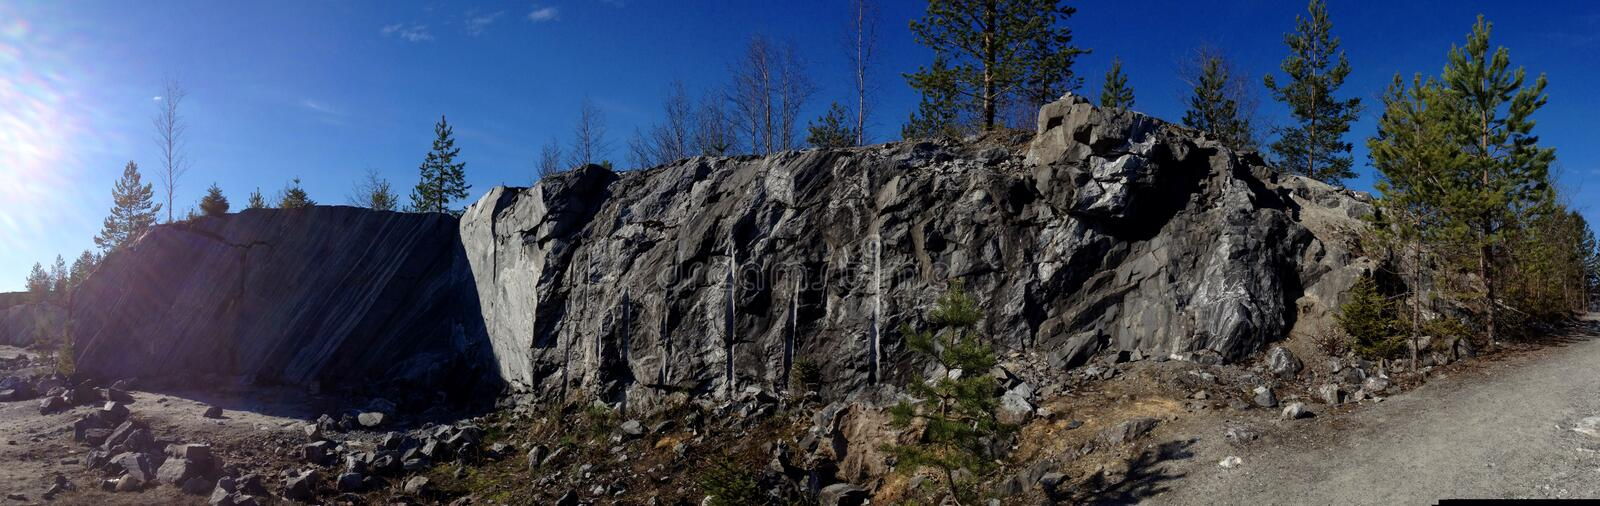 Panorama of the wild rocky places. stock images